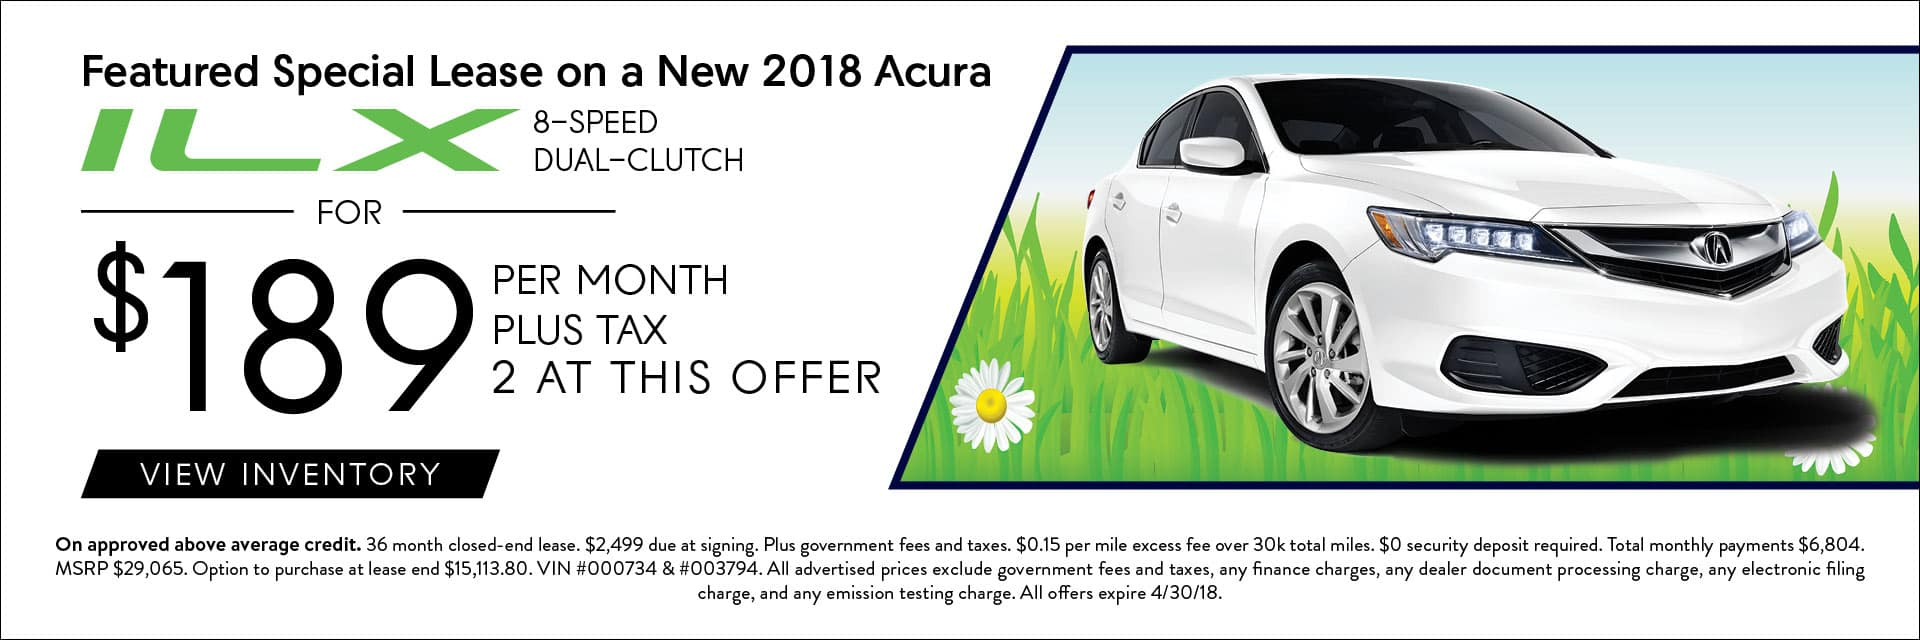 2018 Acura ILX Spring Offers Banner